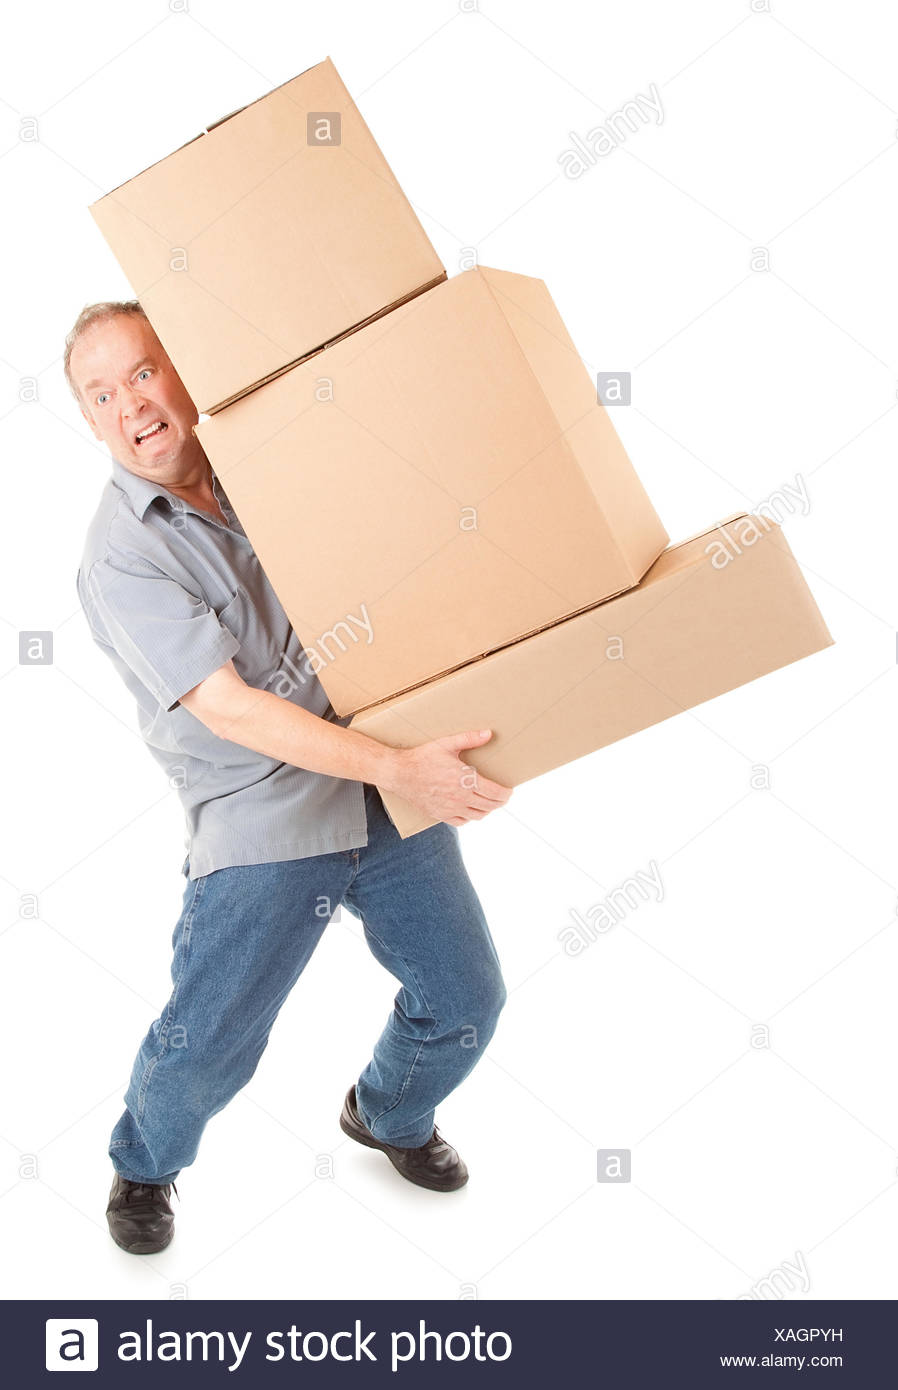 A man is painfully carrying boxes. Stock Photo